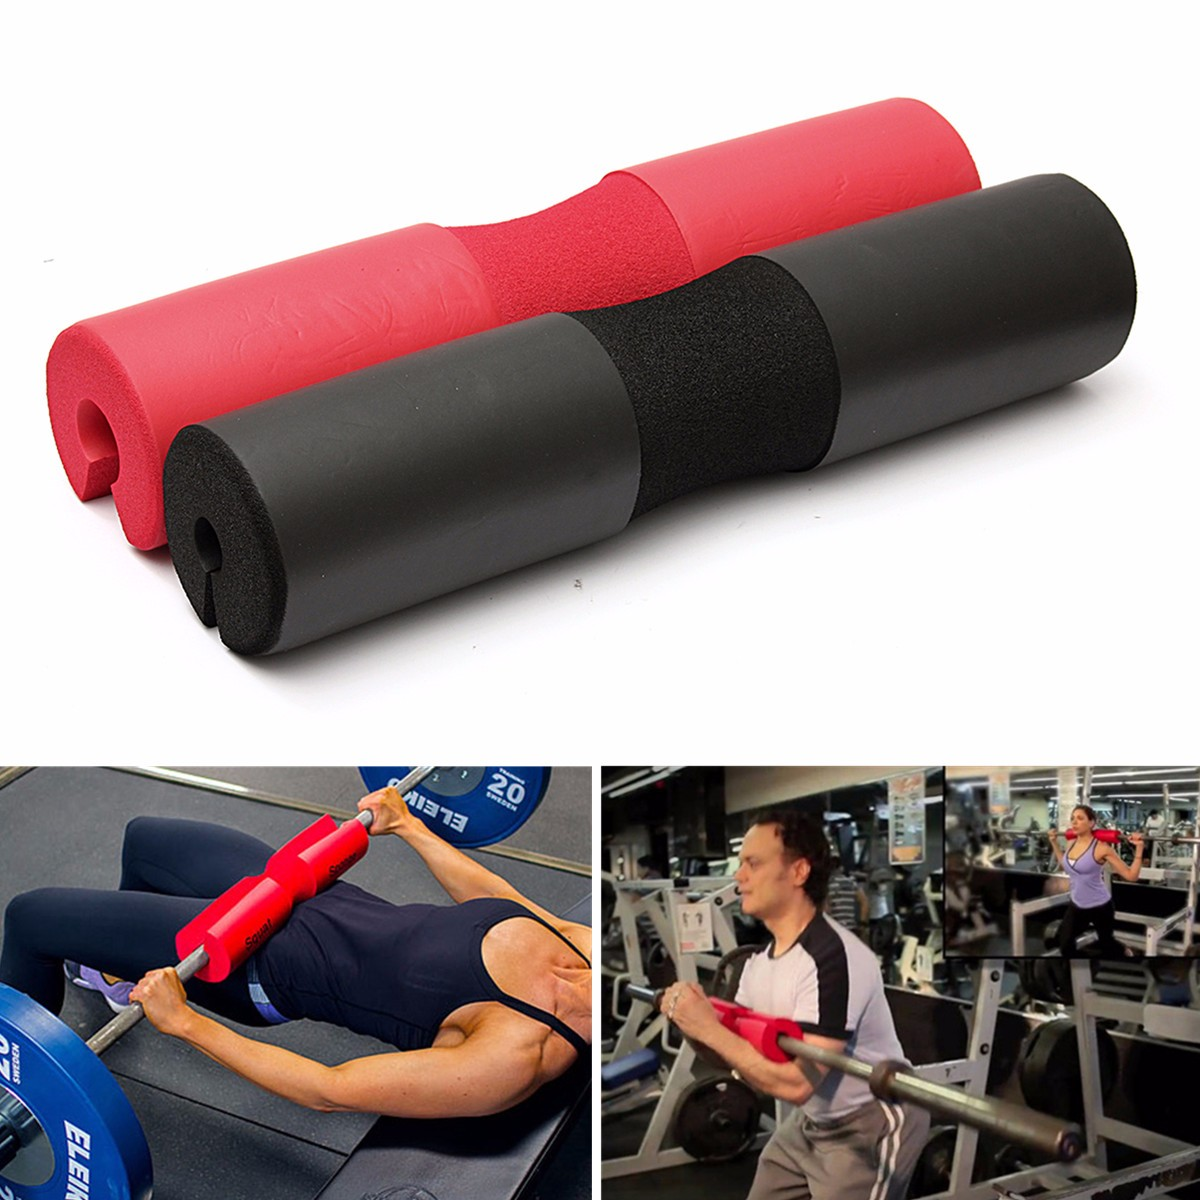 Barbell Squat Pad Sponge Cover Foam Shoulder Back Protecter for Squat Weight Lifting